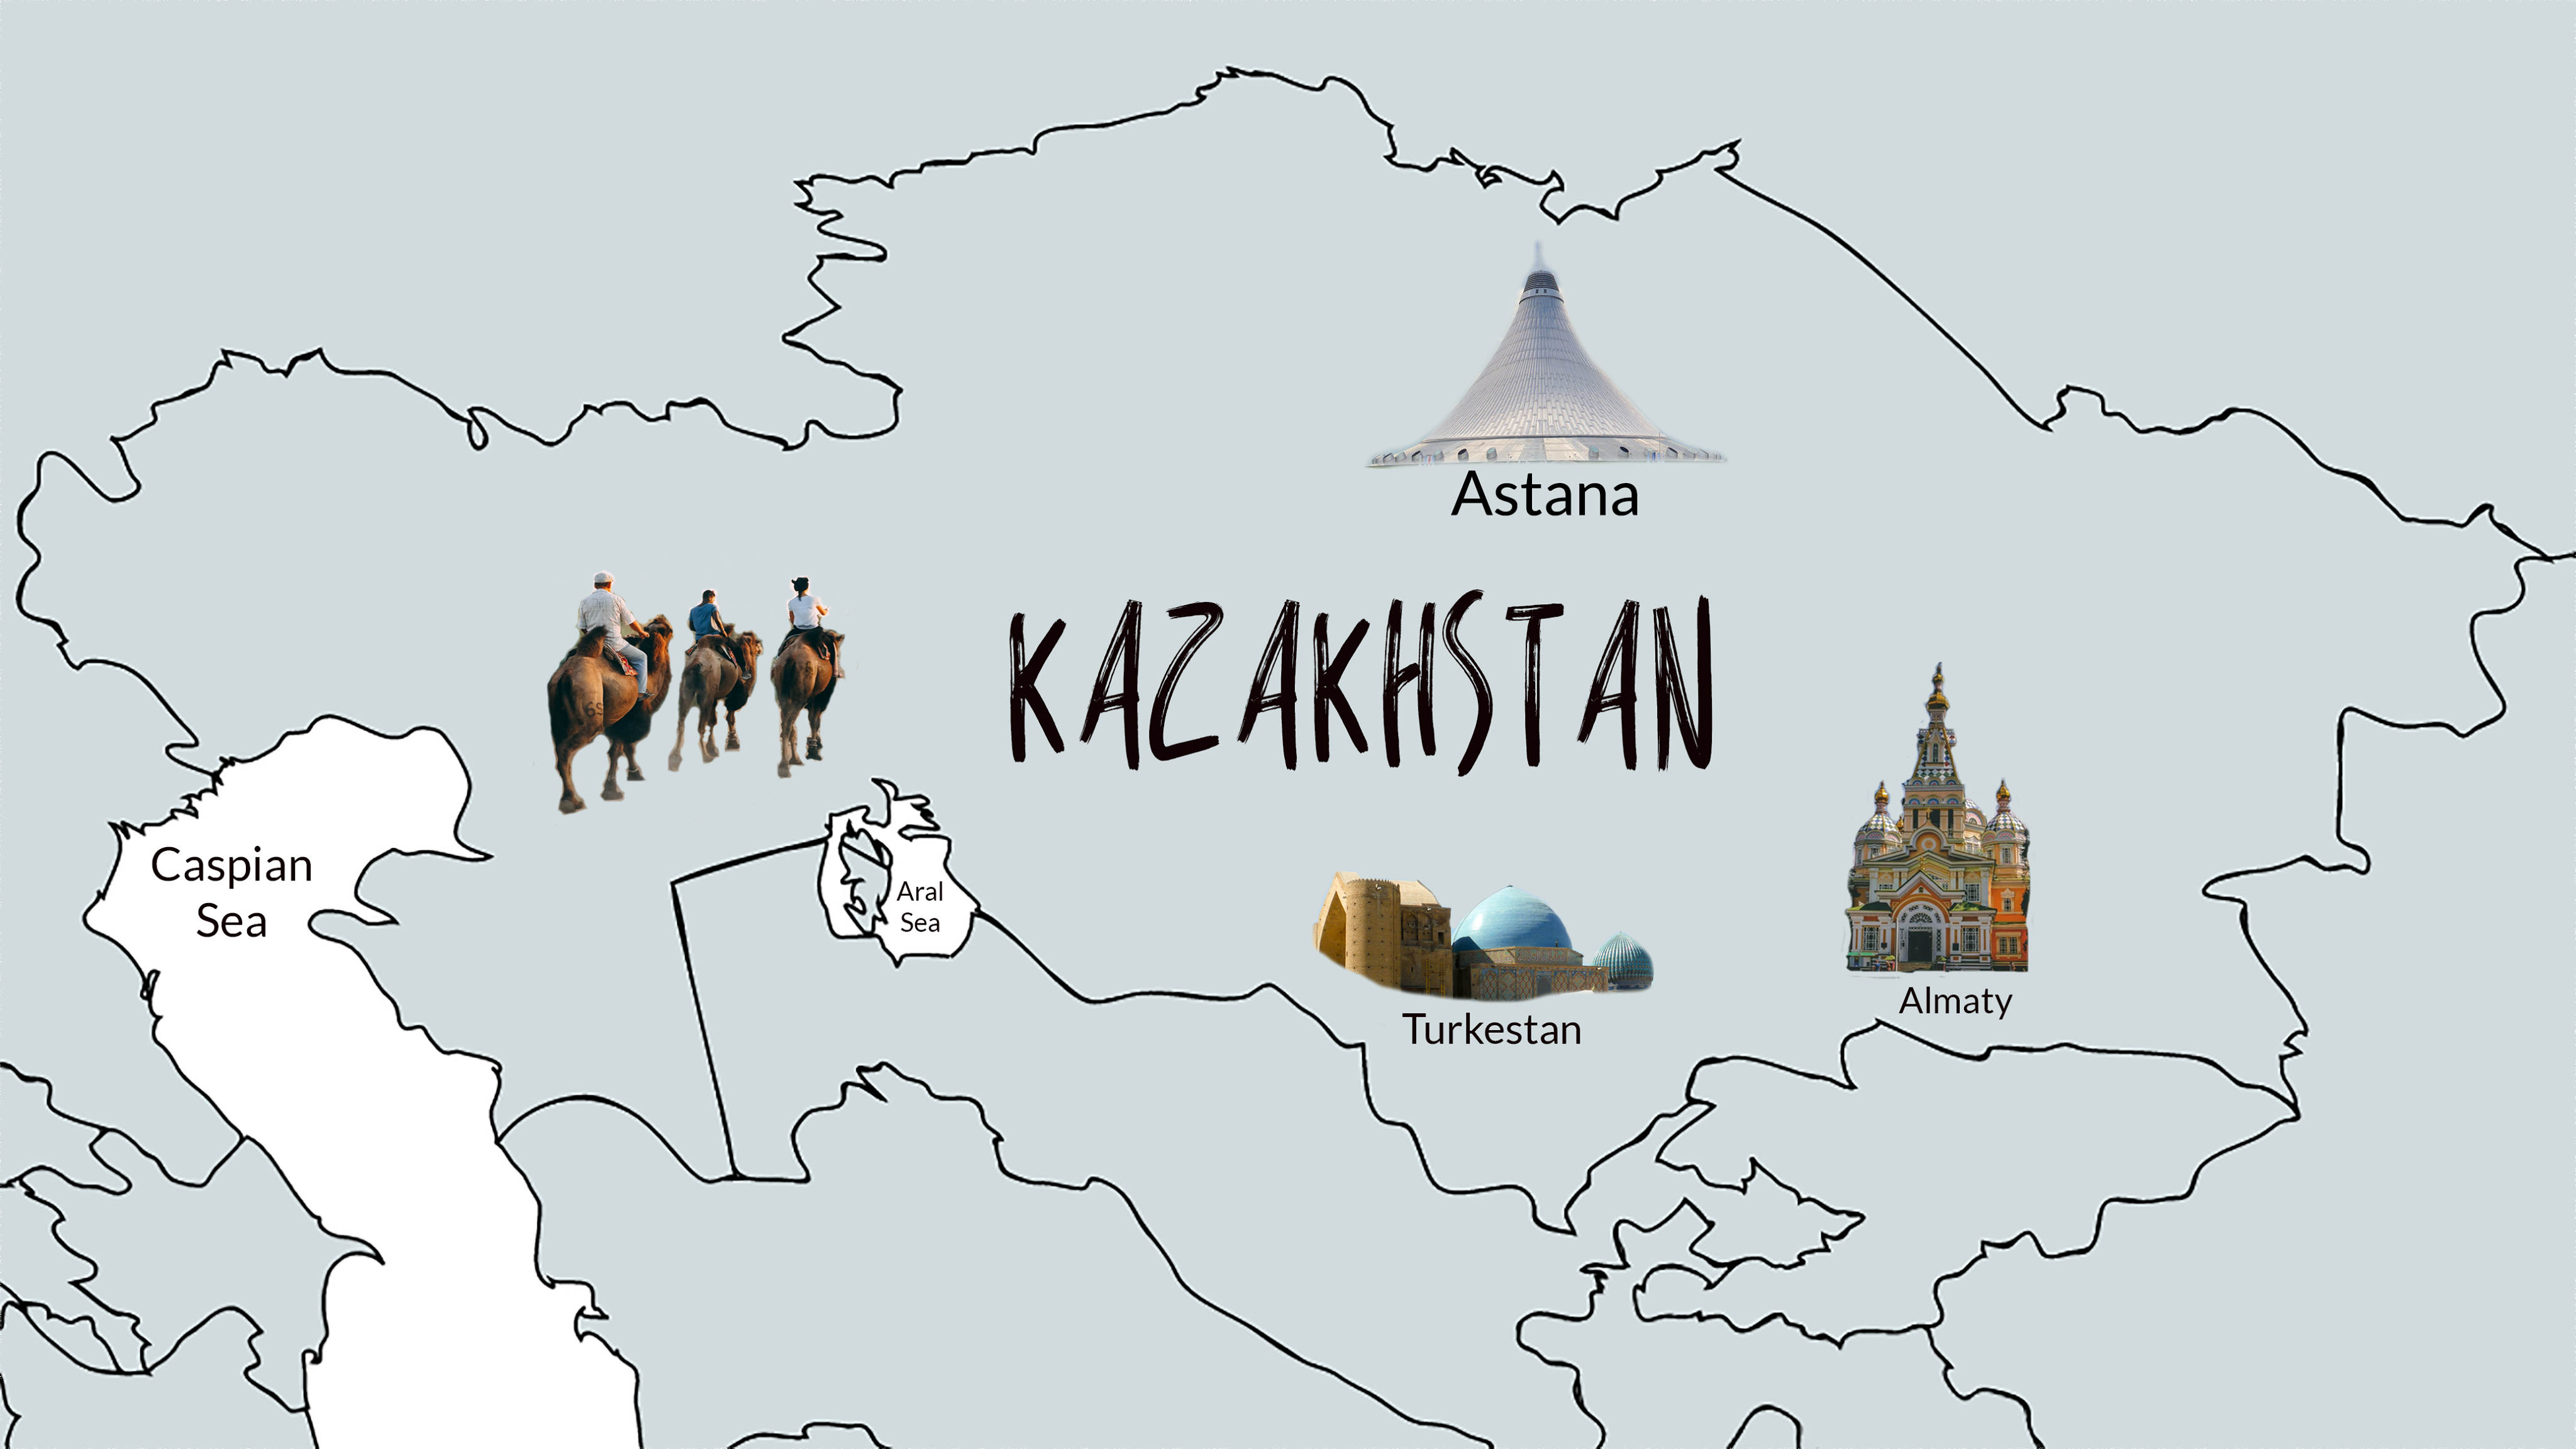 Kazakhstan map with major travel highlights